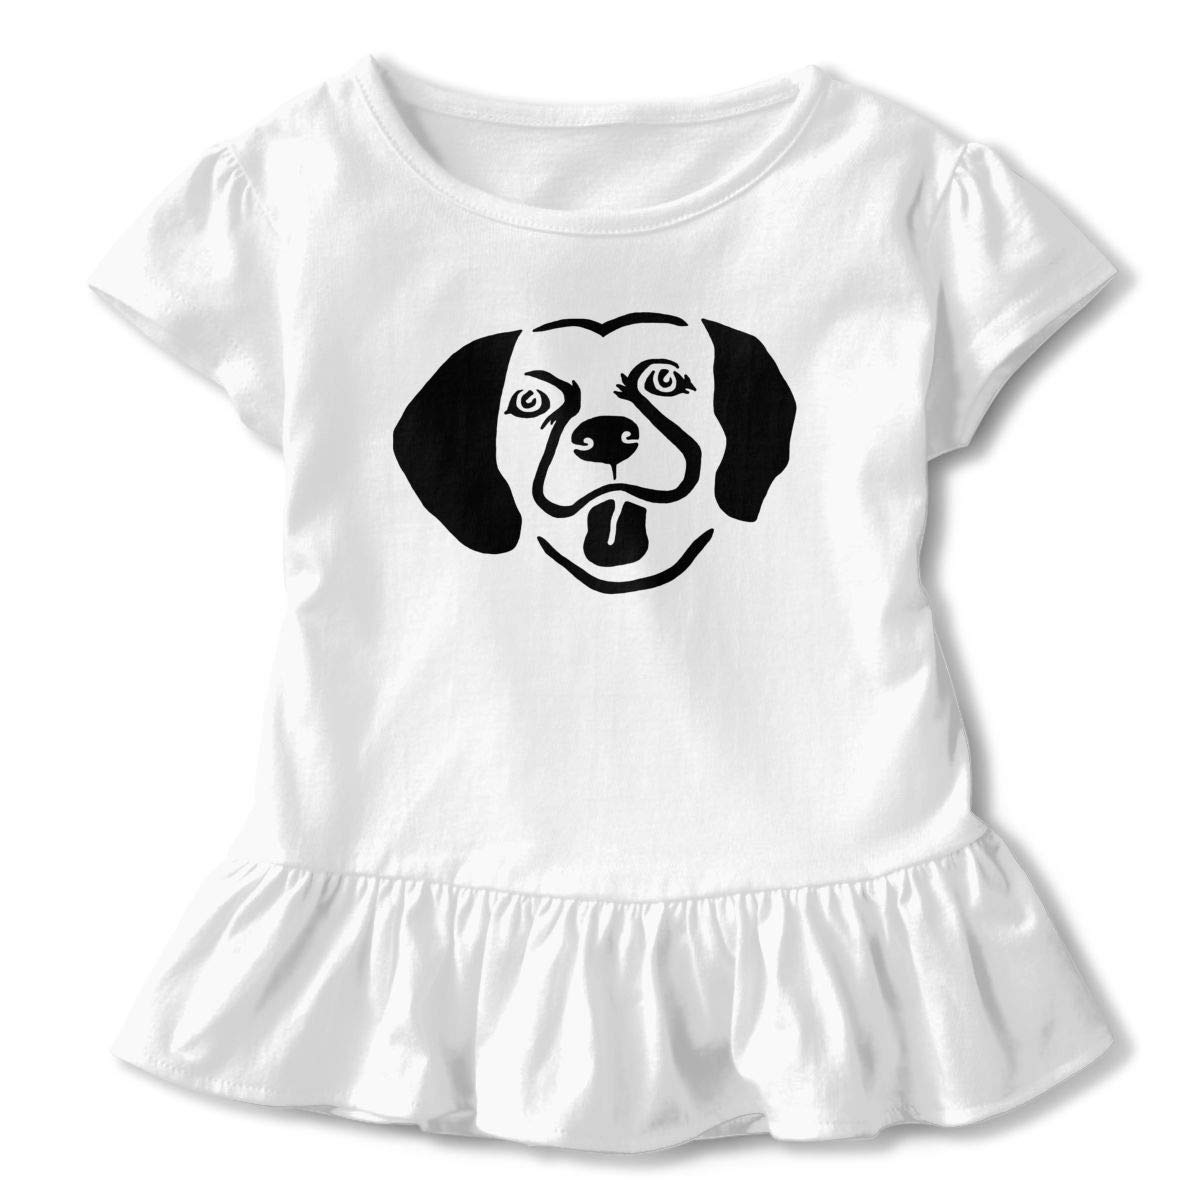 JVNSS Dog Face Shirt Printed Toddler//Infant Flounced T Shirts Tee Shirts for 2-6T Kids Girls